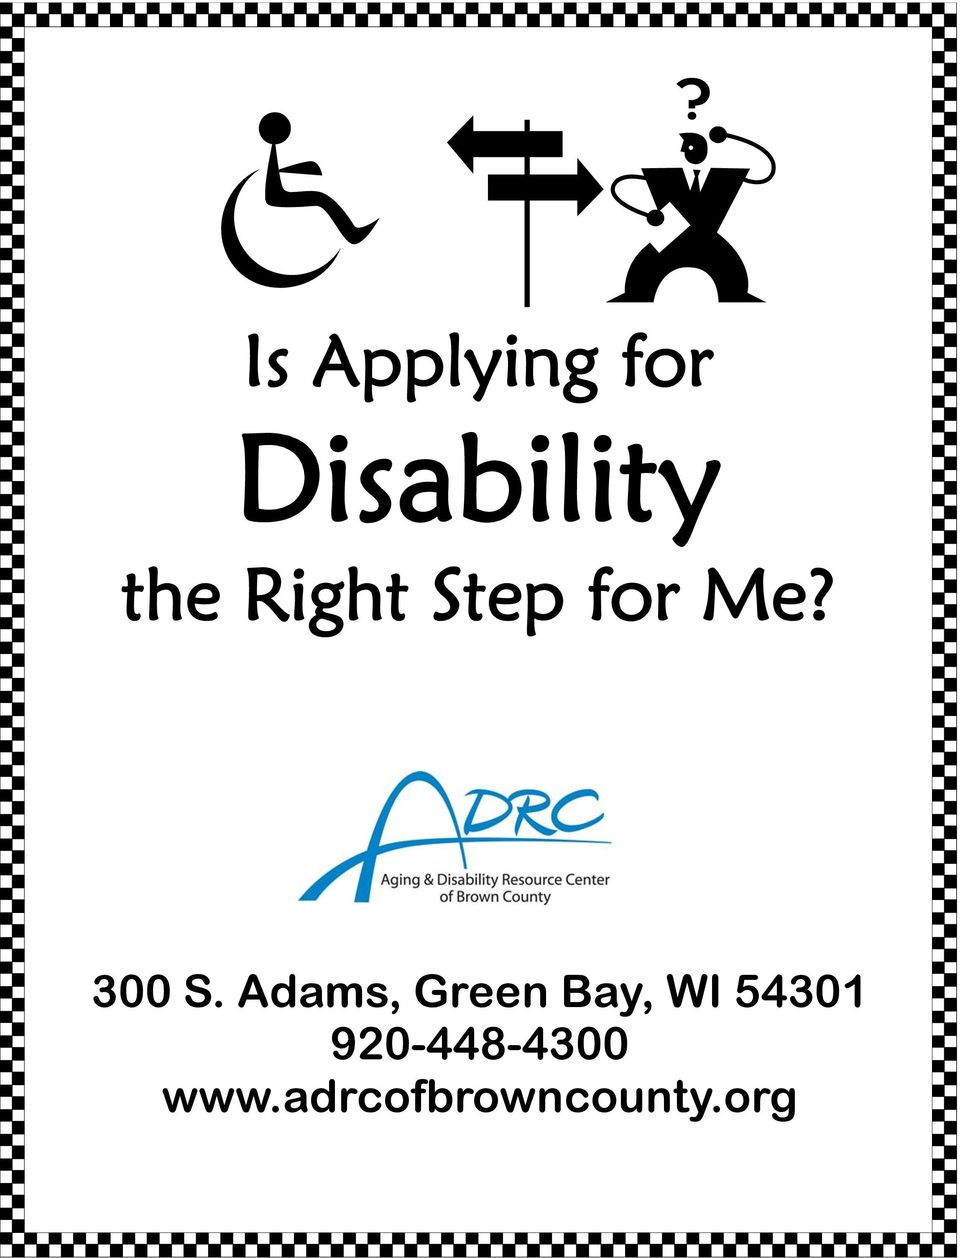 Adams, Green Bay, WI 54301